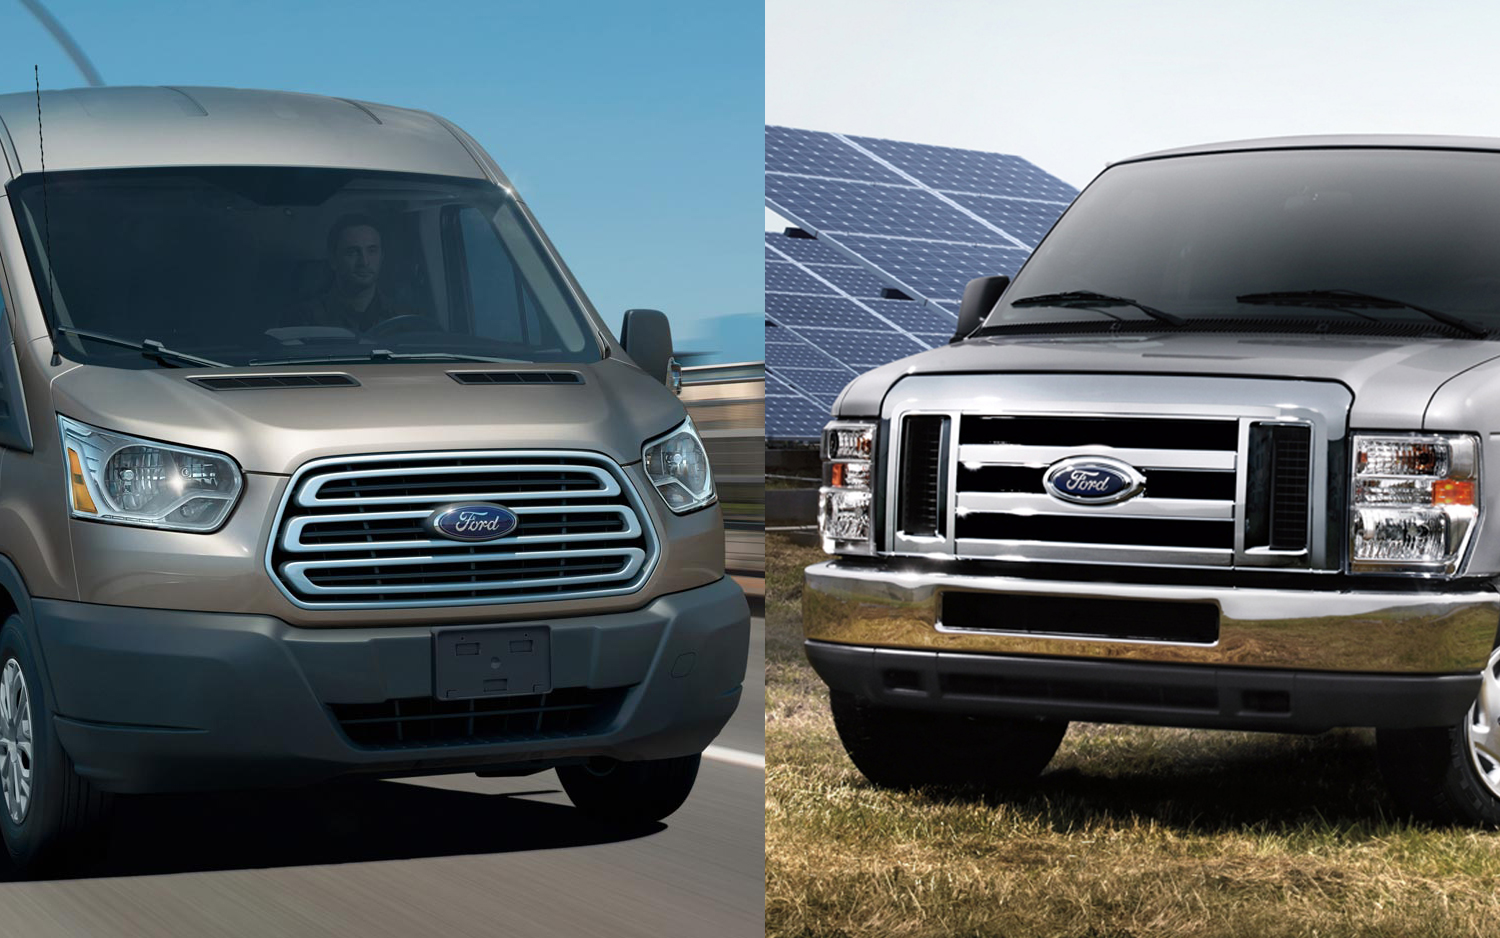 Ford E-Series Van 2014 #3